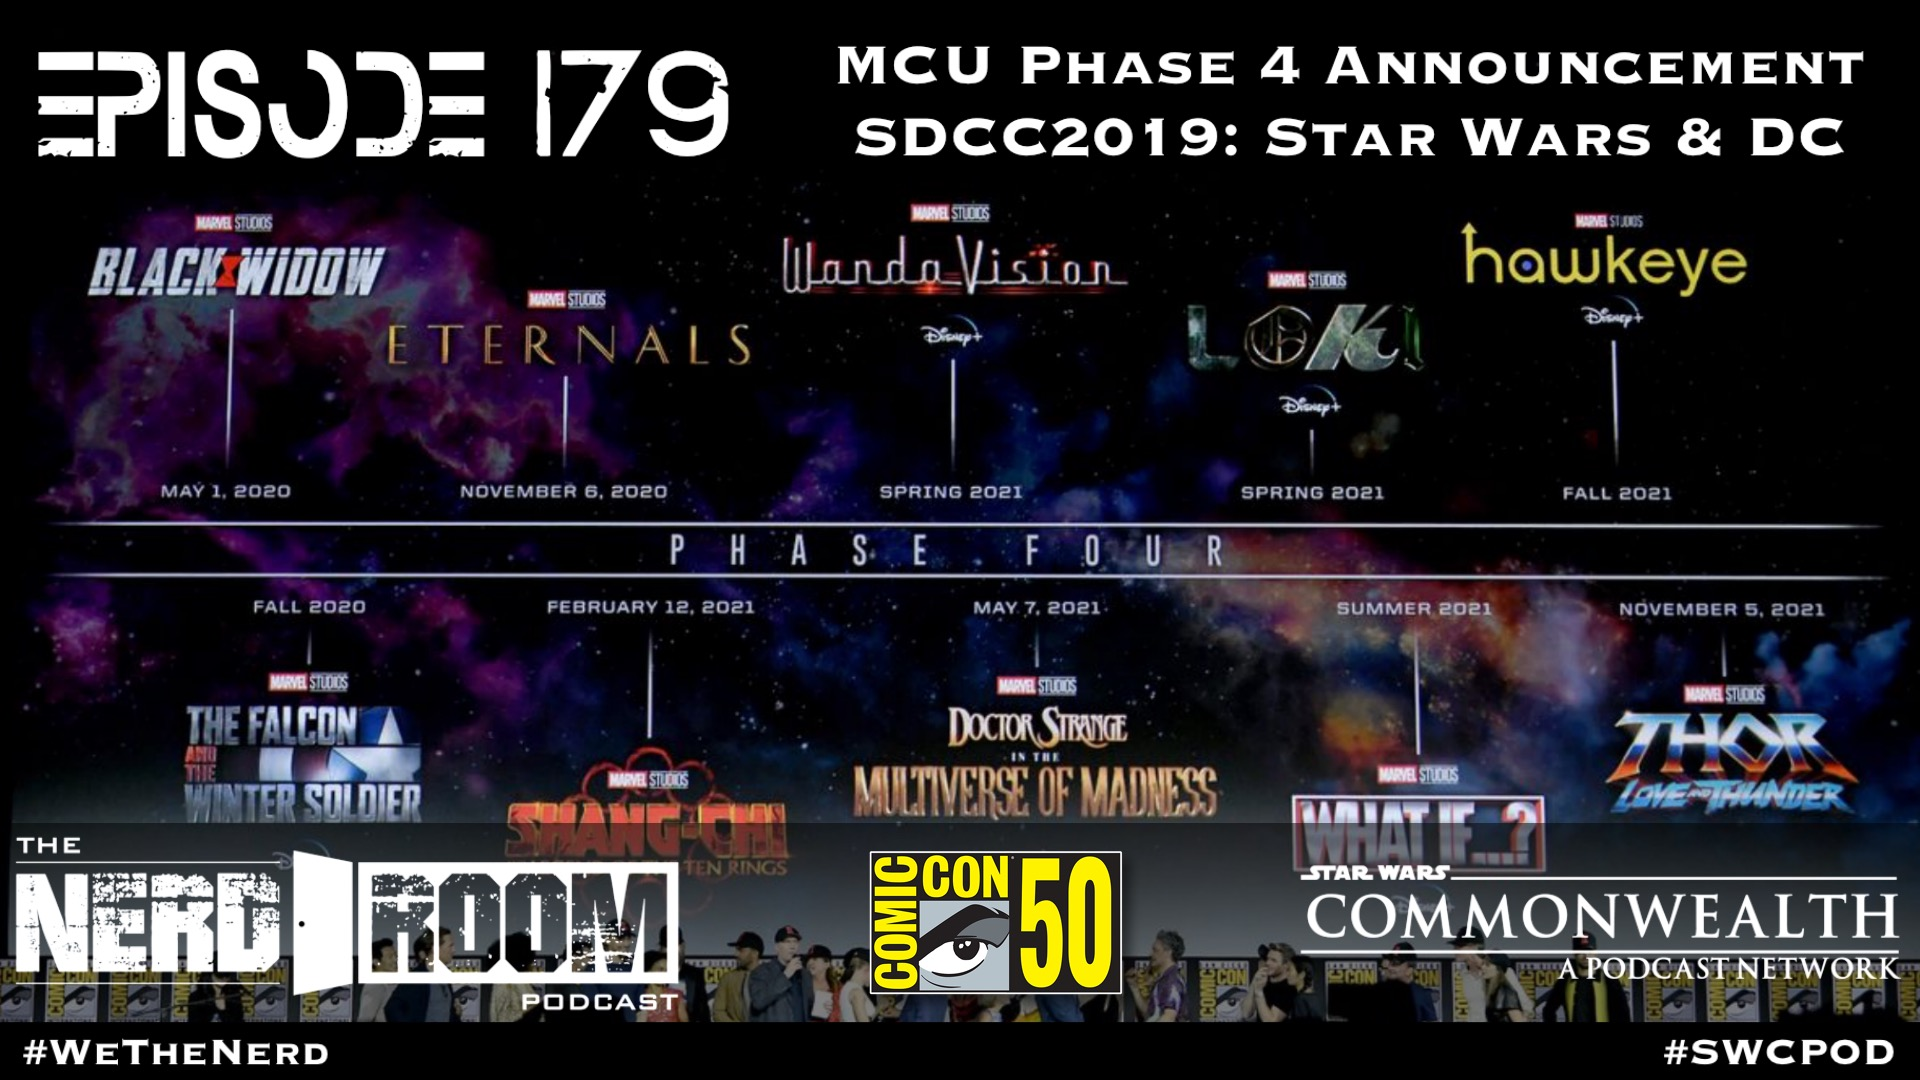 mcu phase 4 announcement